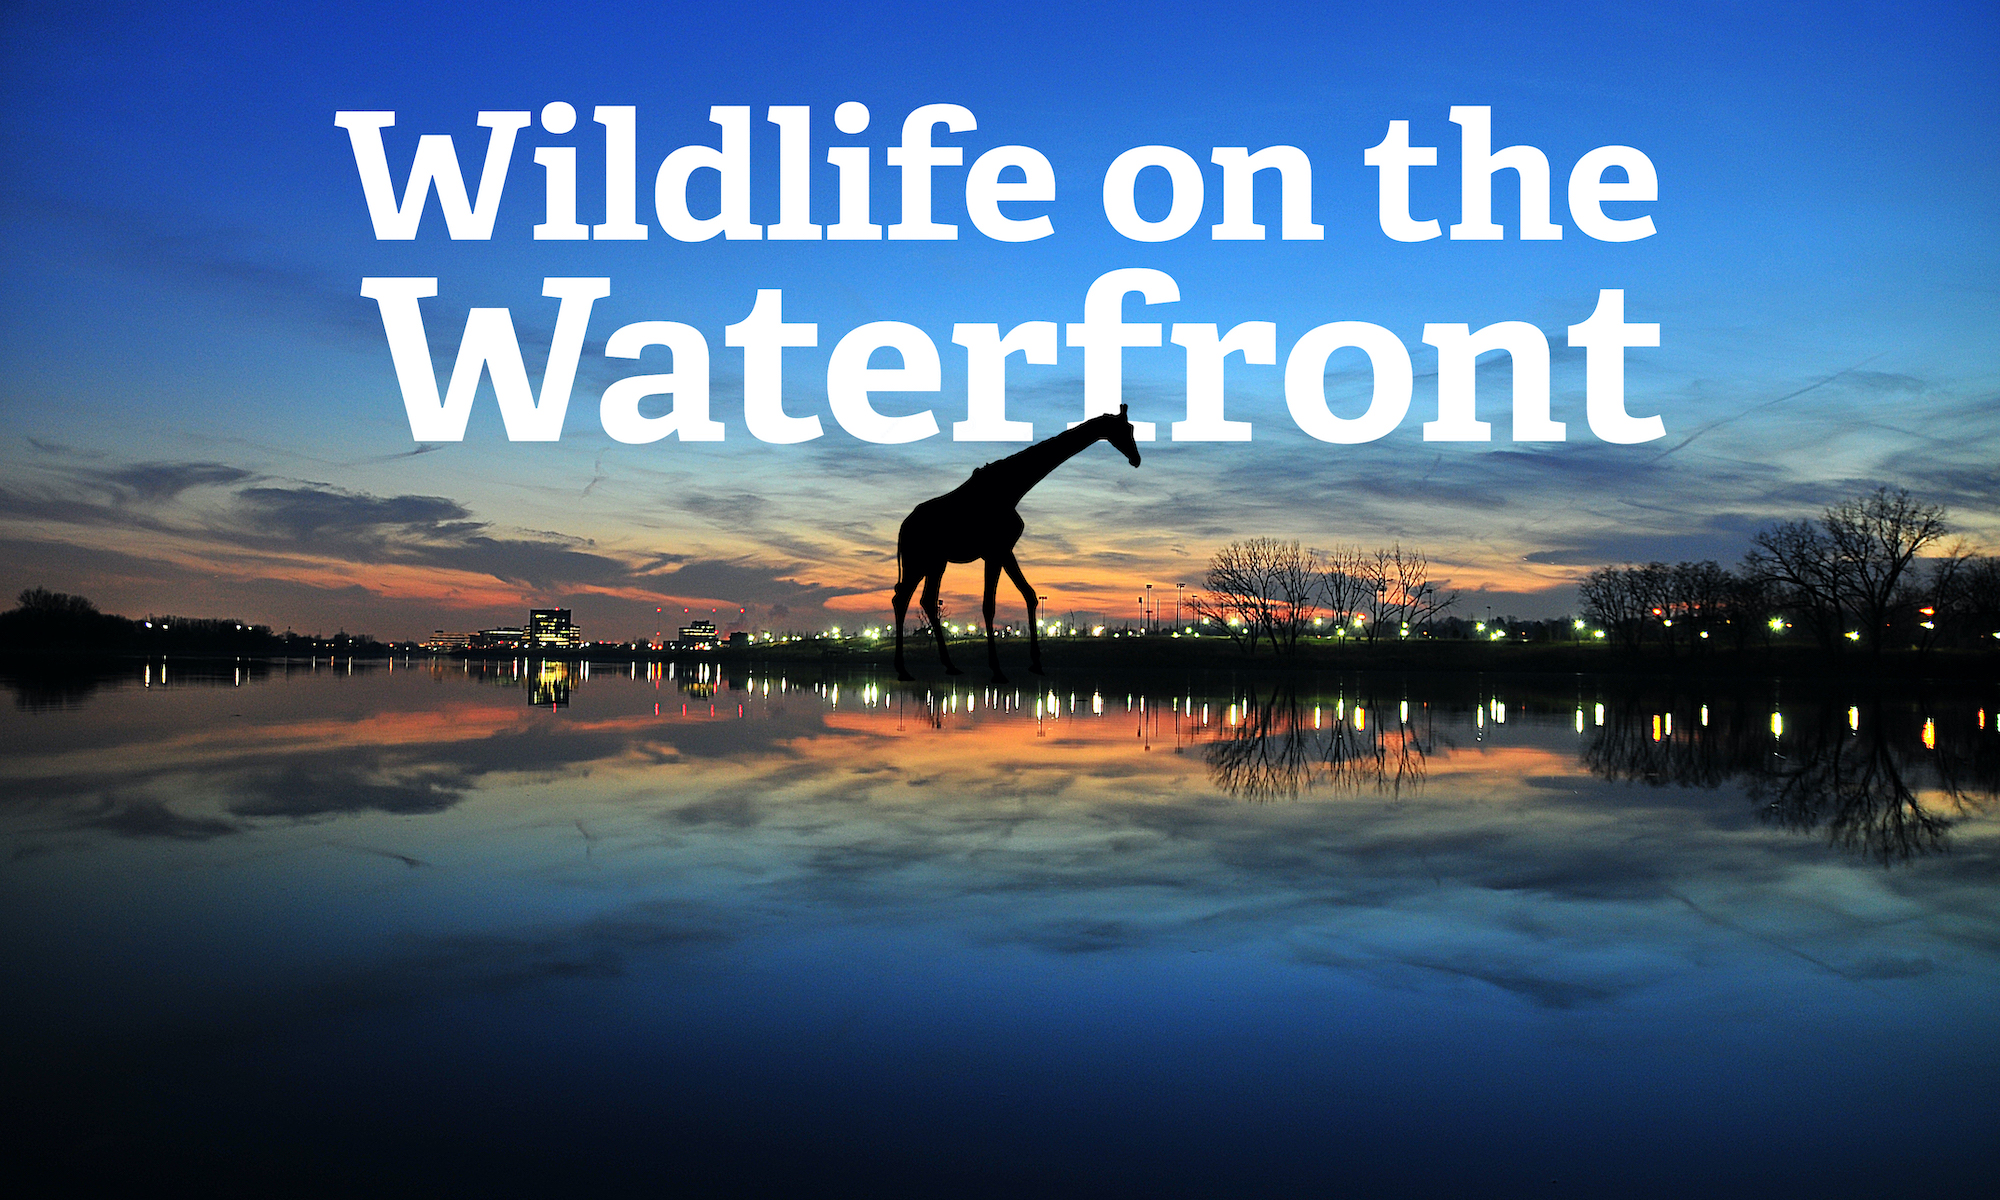 Wildlife on the Waterfront